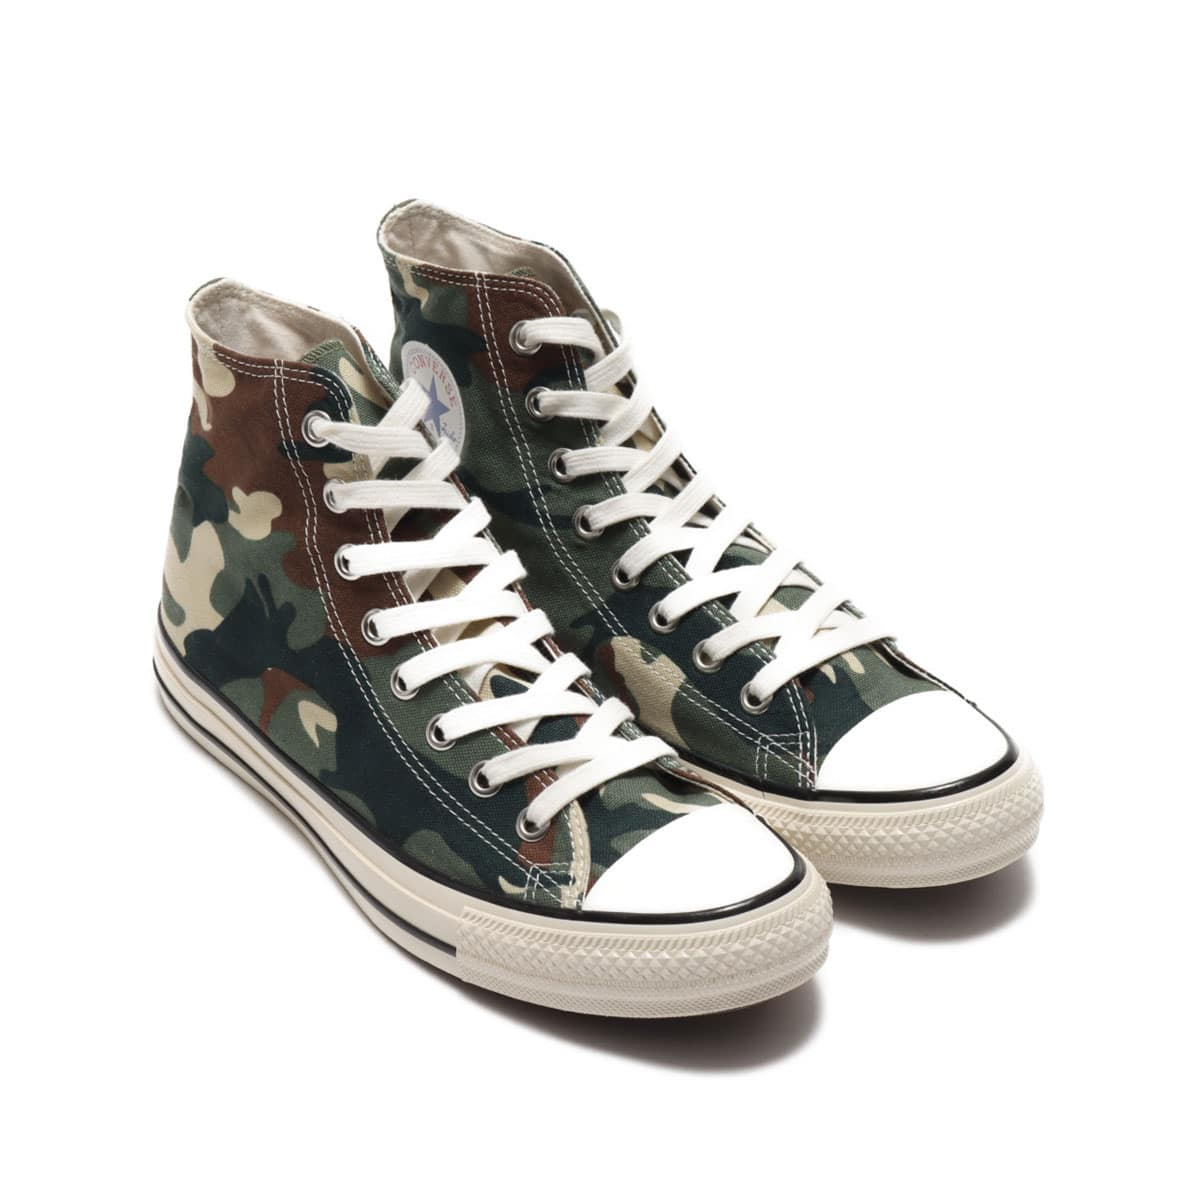 CONVERSE ALL STAR US CAMO HI WOODLANDCAMO 21SS-I_photo_large